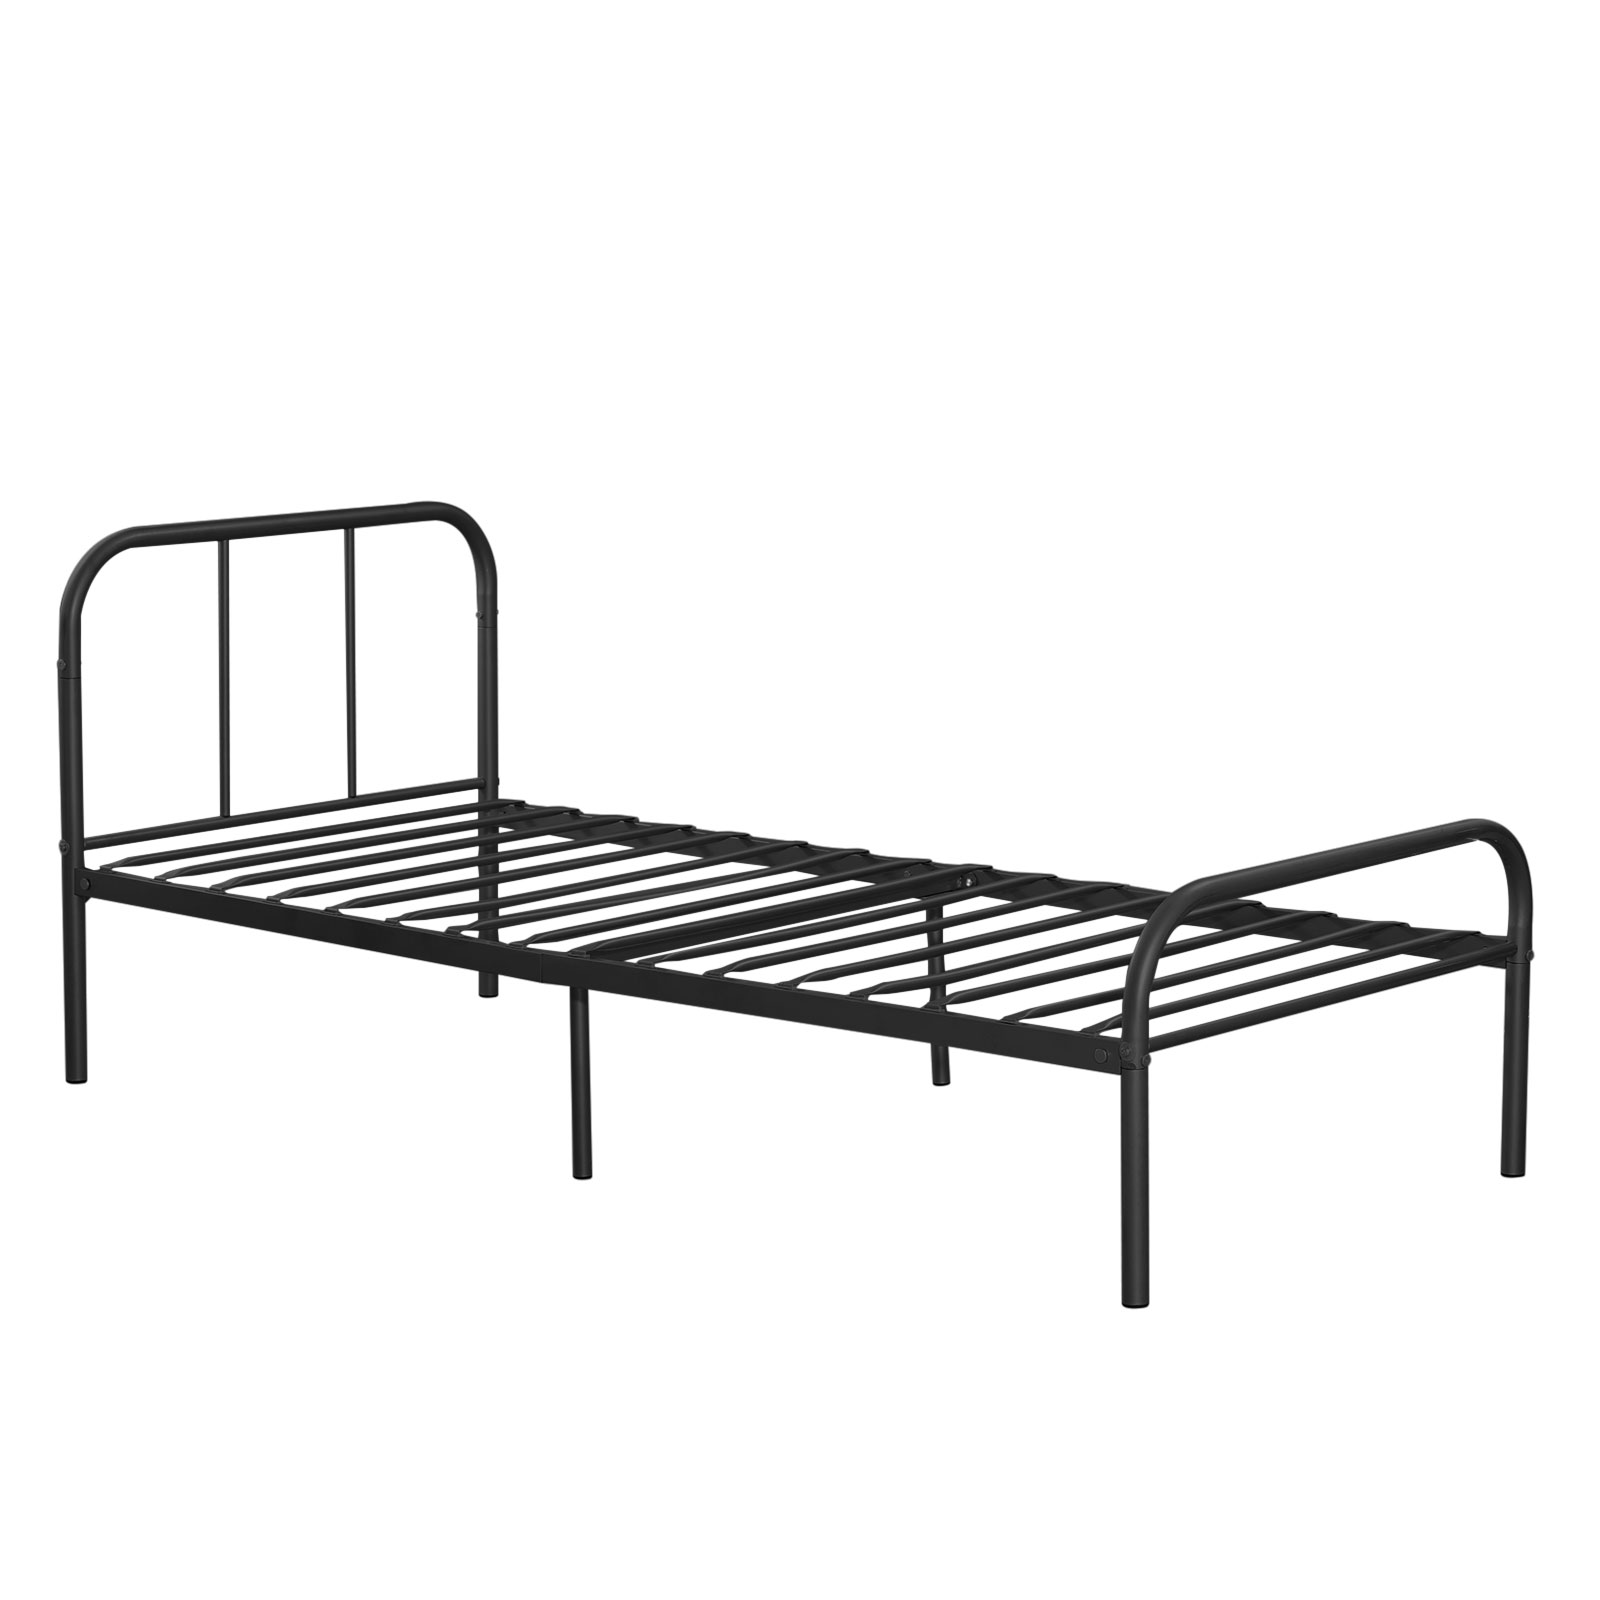 Metal platform bed frame twin size bedroom heavy duty for Twin size mattress and frame